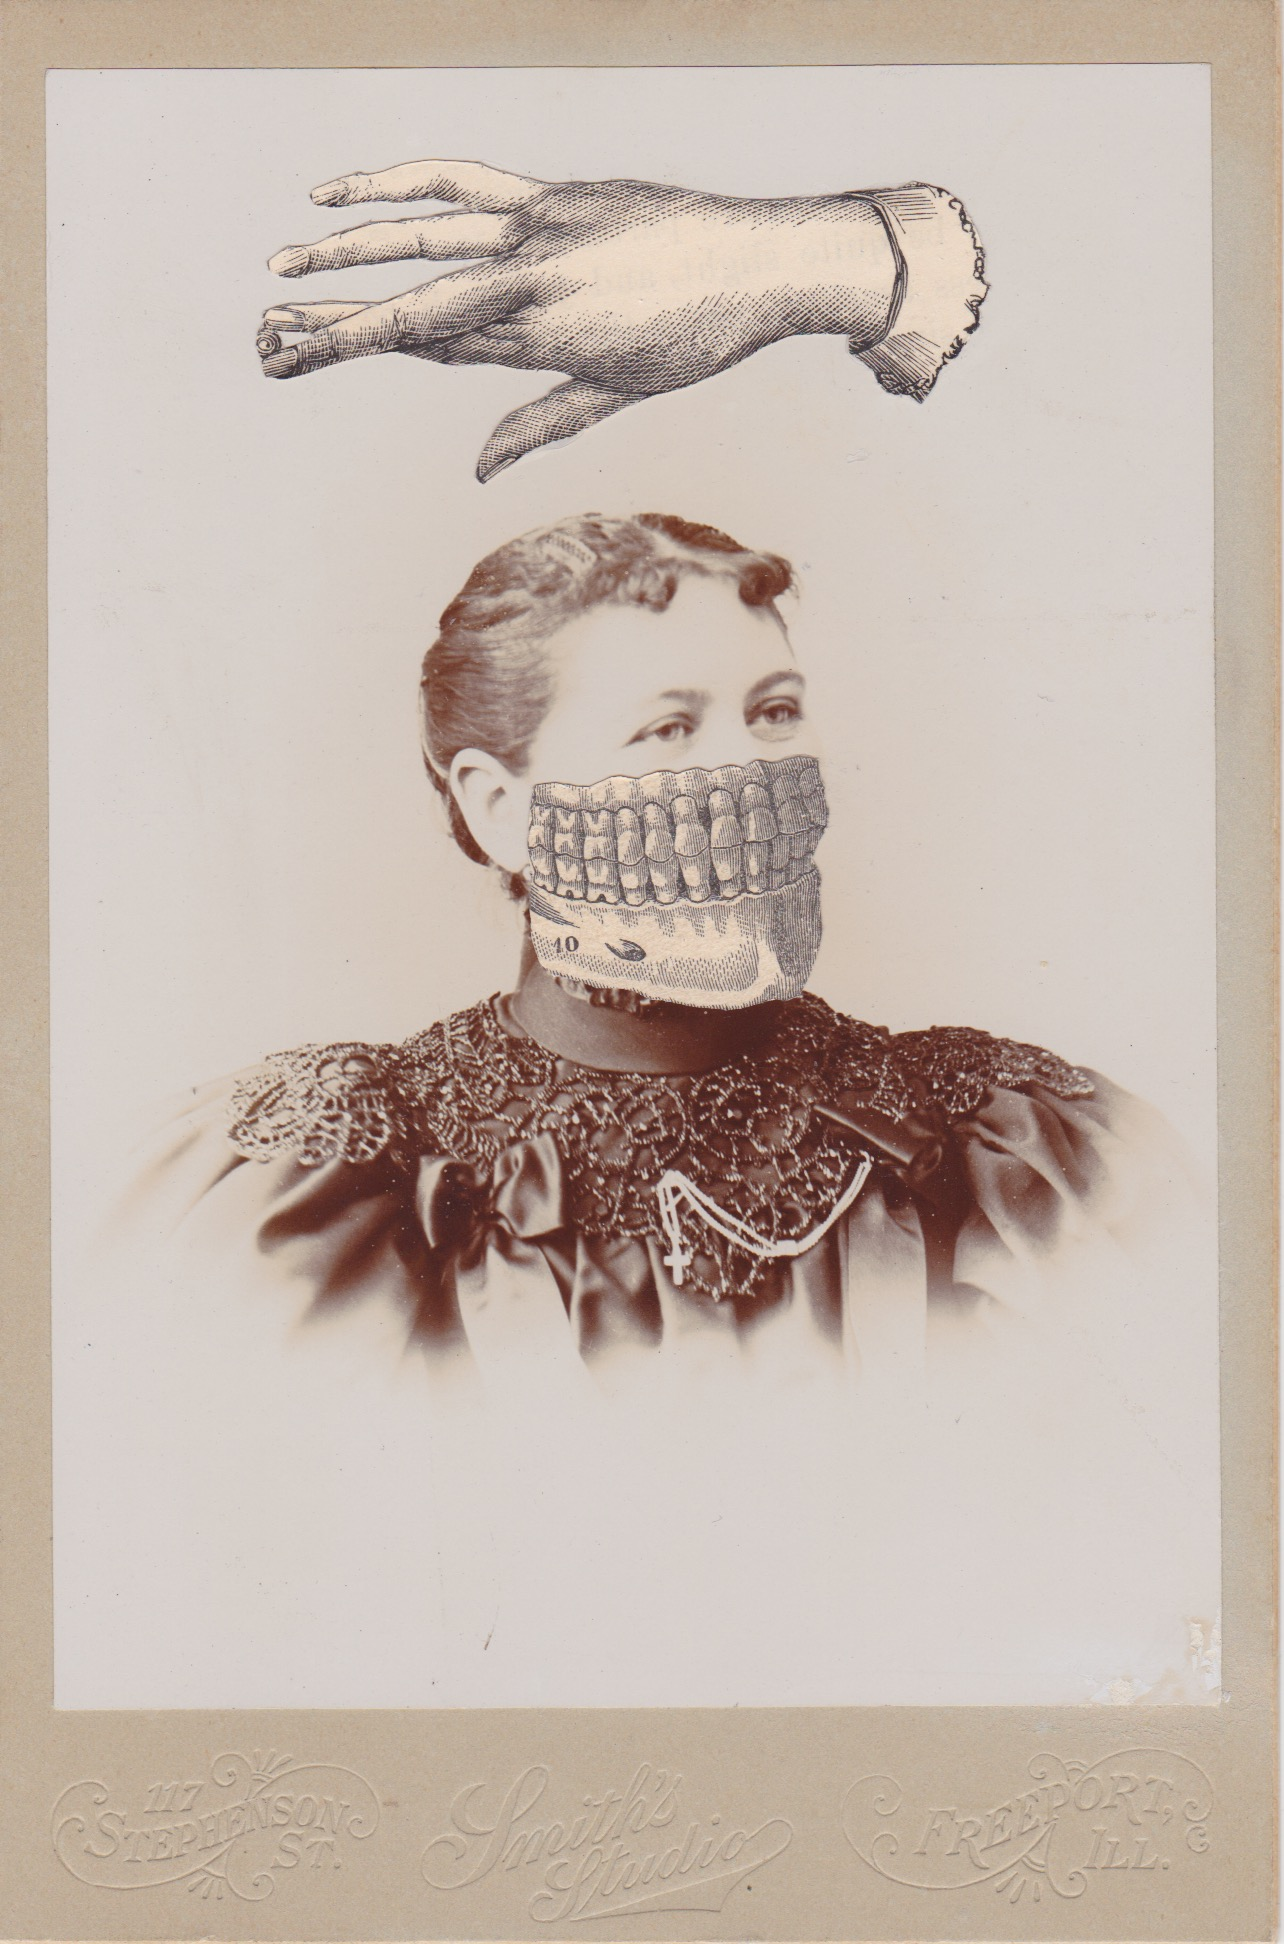 Mysterian No. 89404, collage on 19th century cabinet card